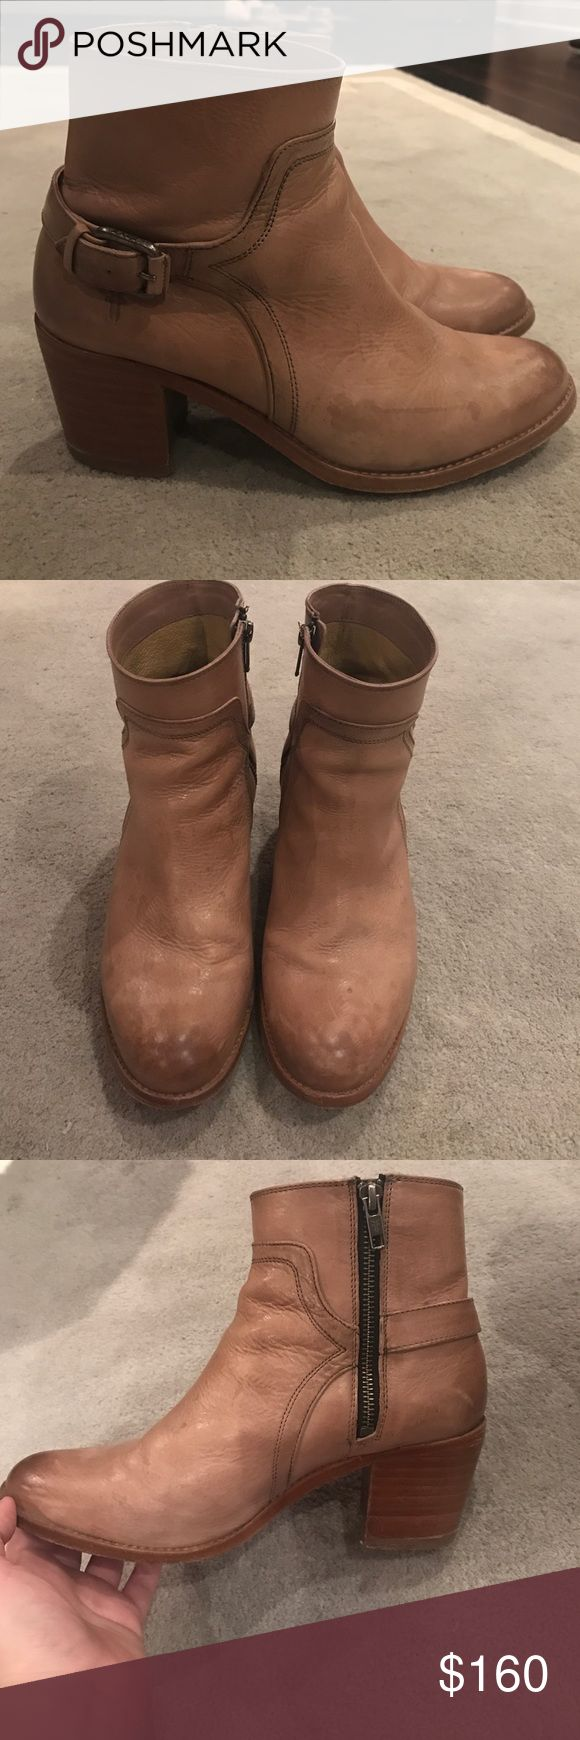 Frye booties with buckle Frye booties in a sand color. In very good condition and perfect for spring. Frye Shoes Ankle Boots & Booties